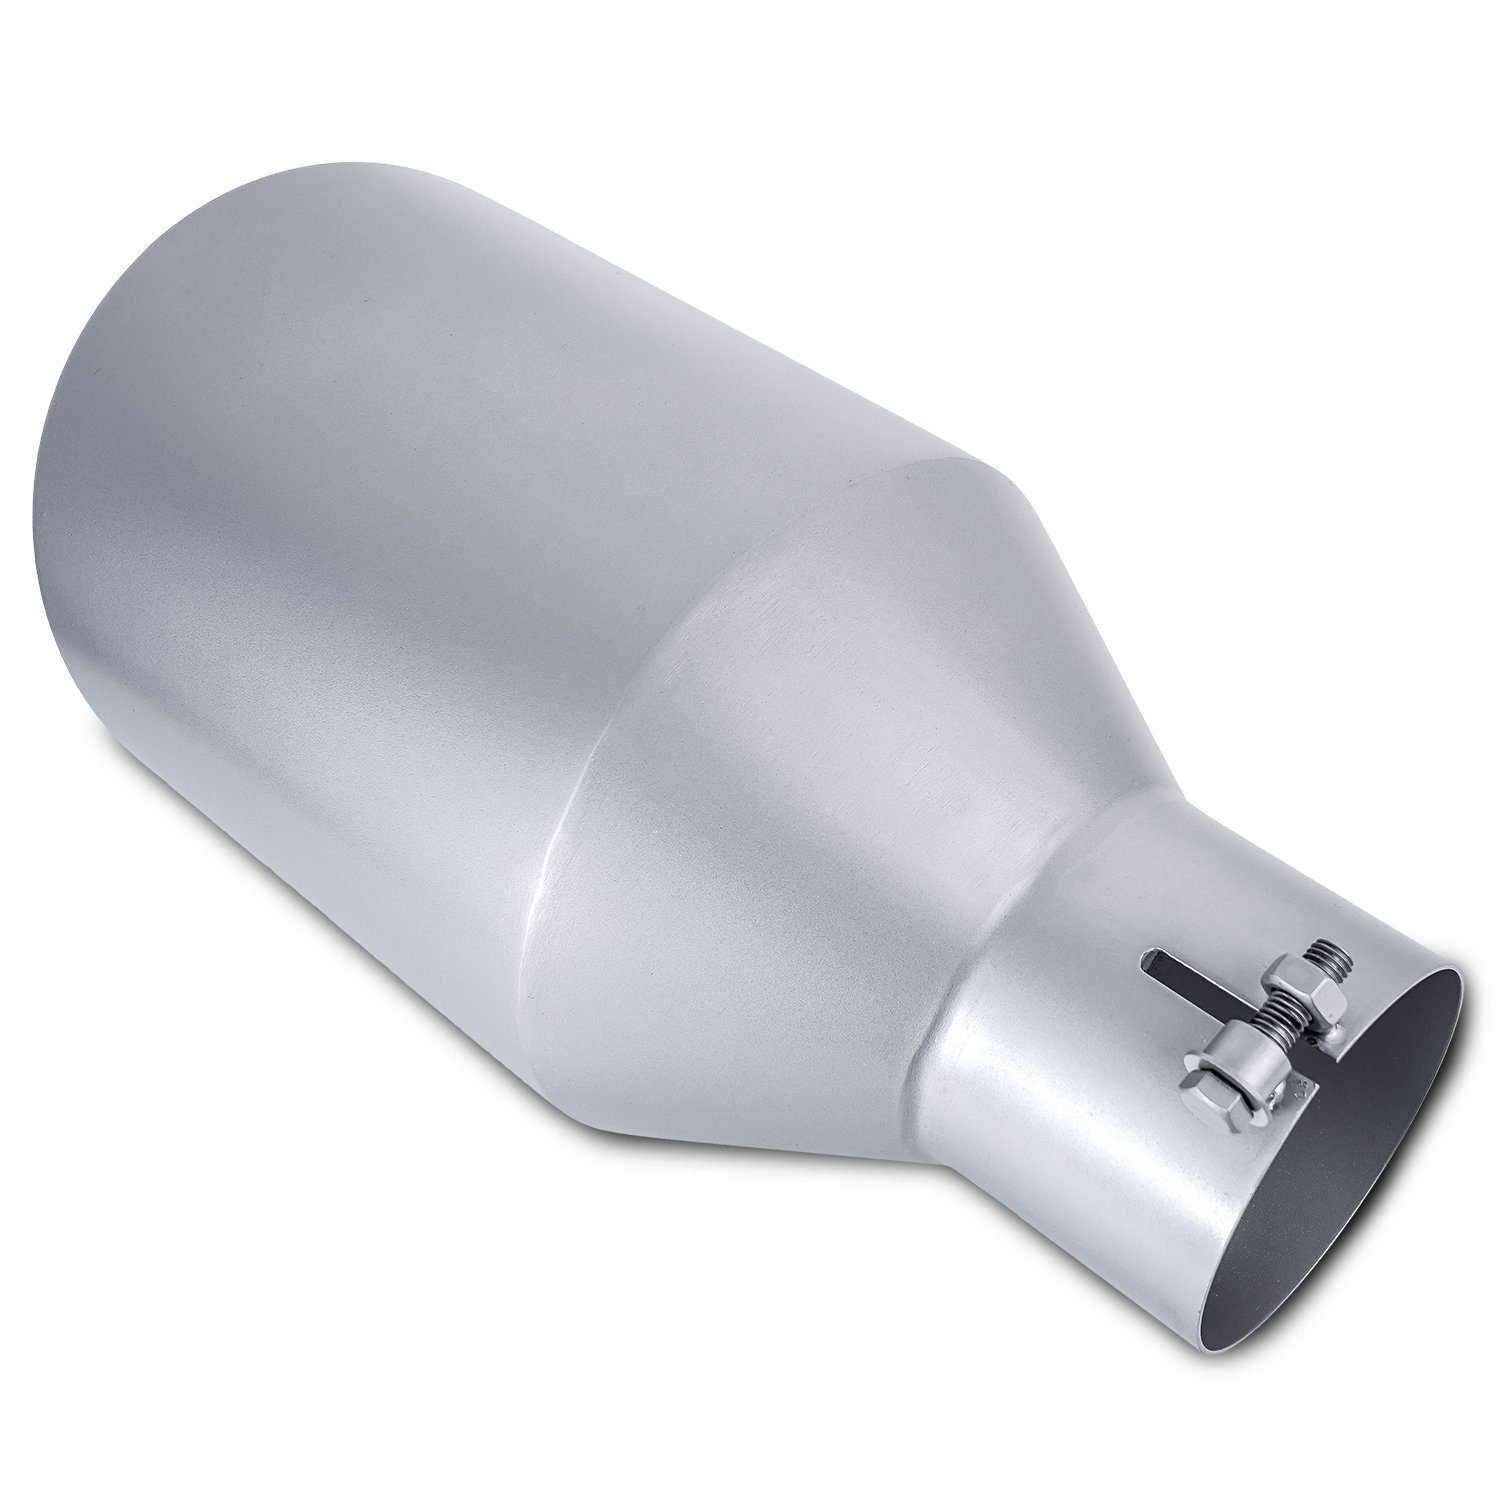 Diesel Trucks Silver Stainless Steel Bolt On Diesel Exhaust Tip 4' inlet 8' Outlet 15' Long KT-SUPPLY